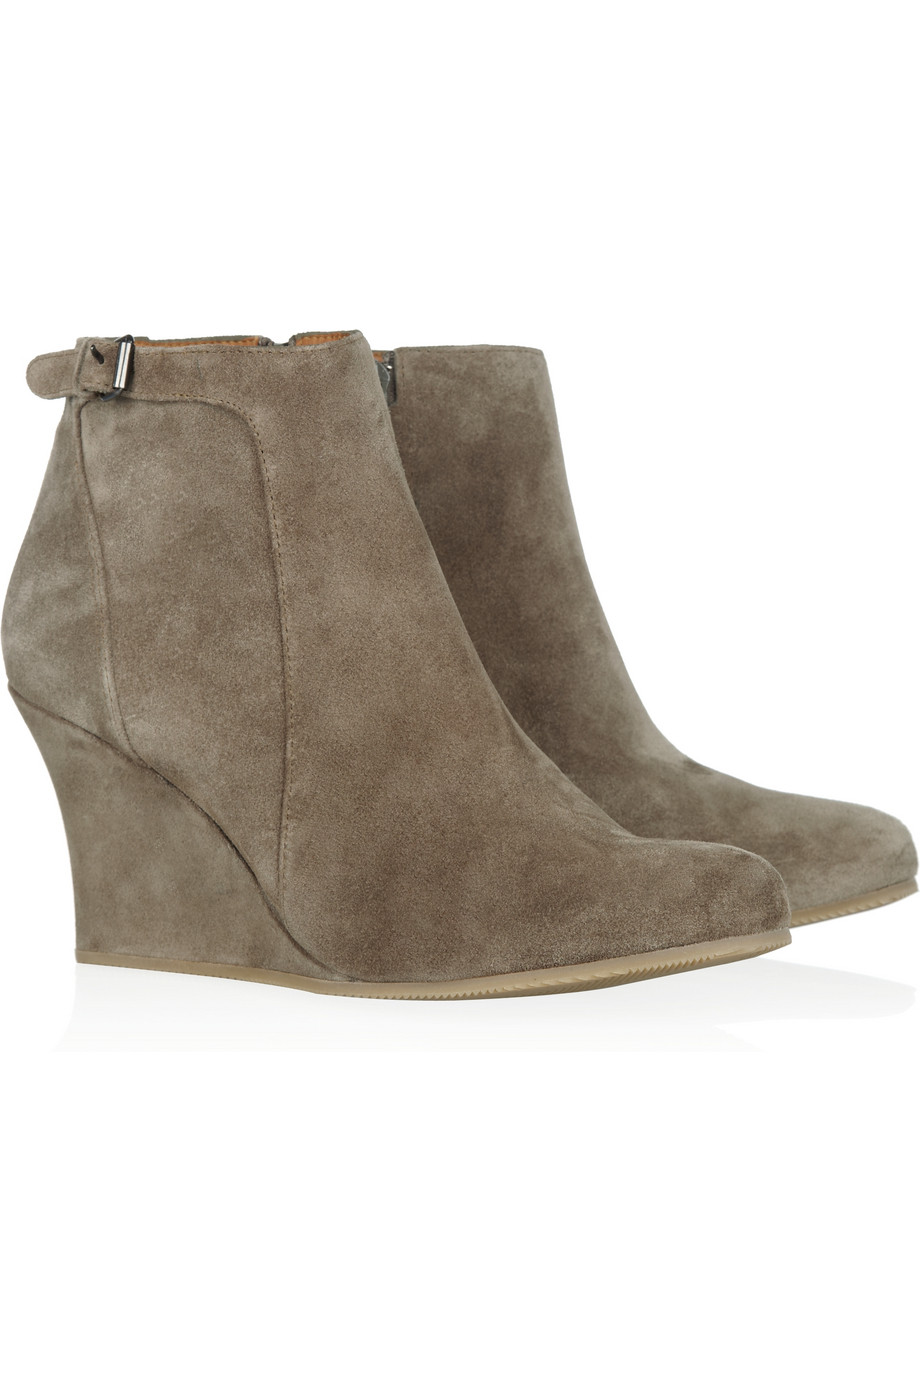 lanvin suede wedge ankle boots in brown taupe lyst